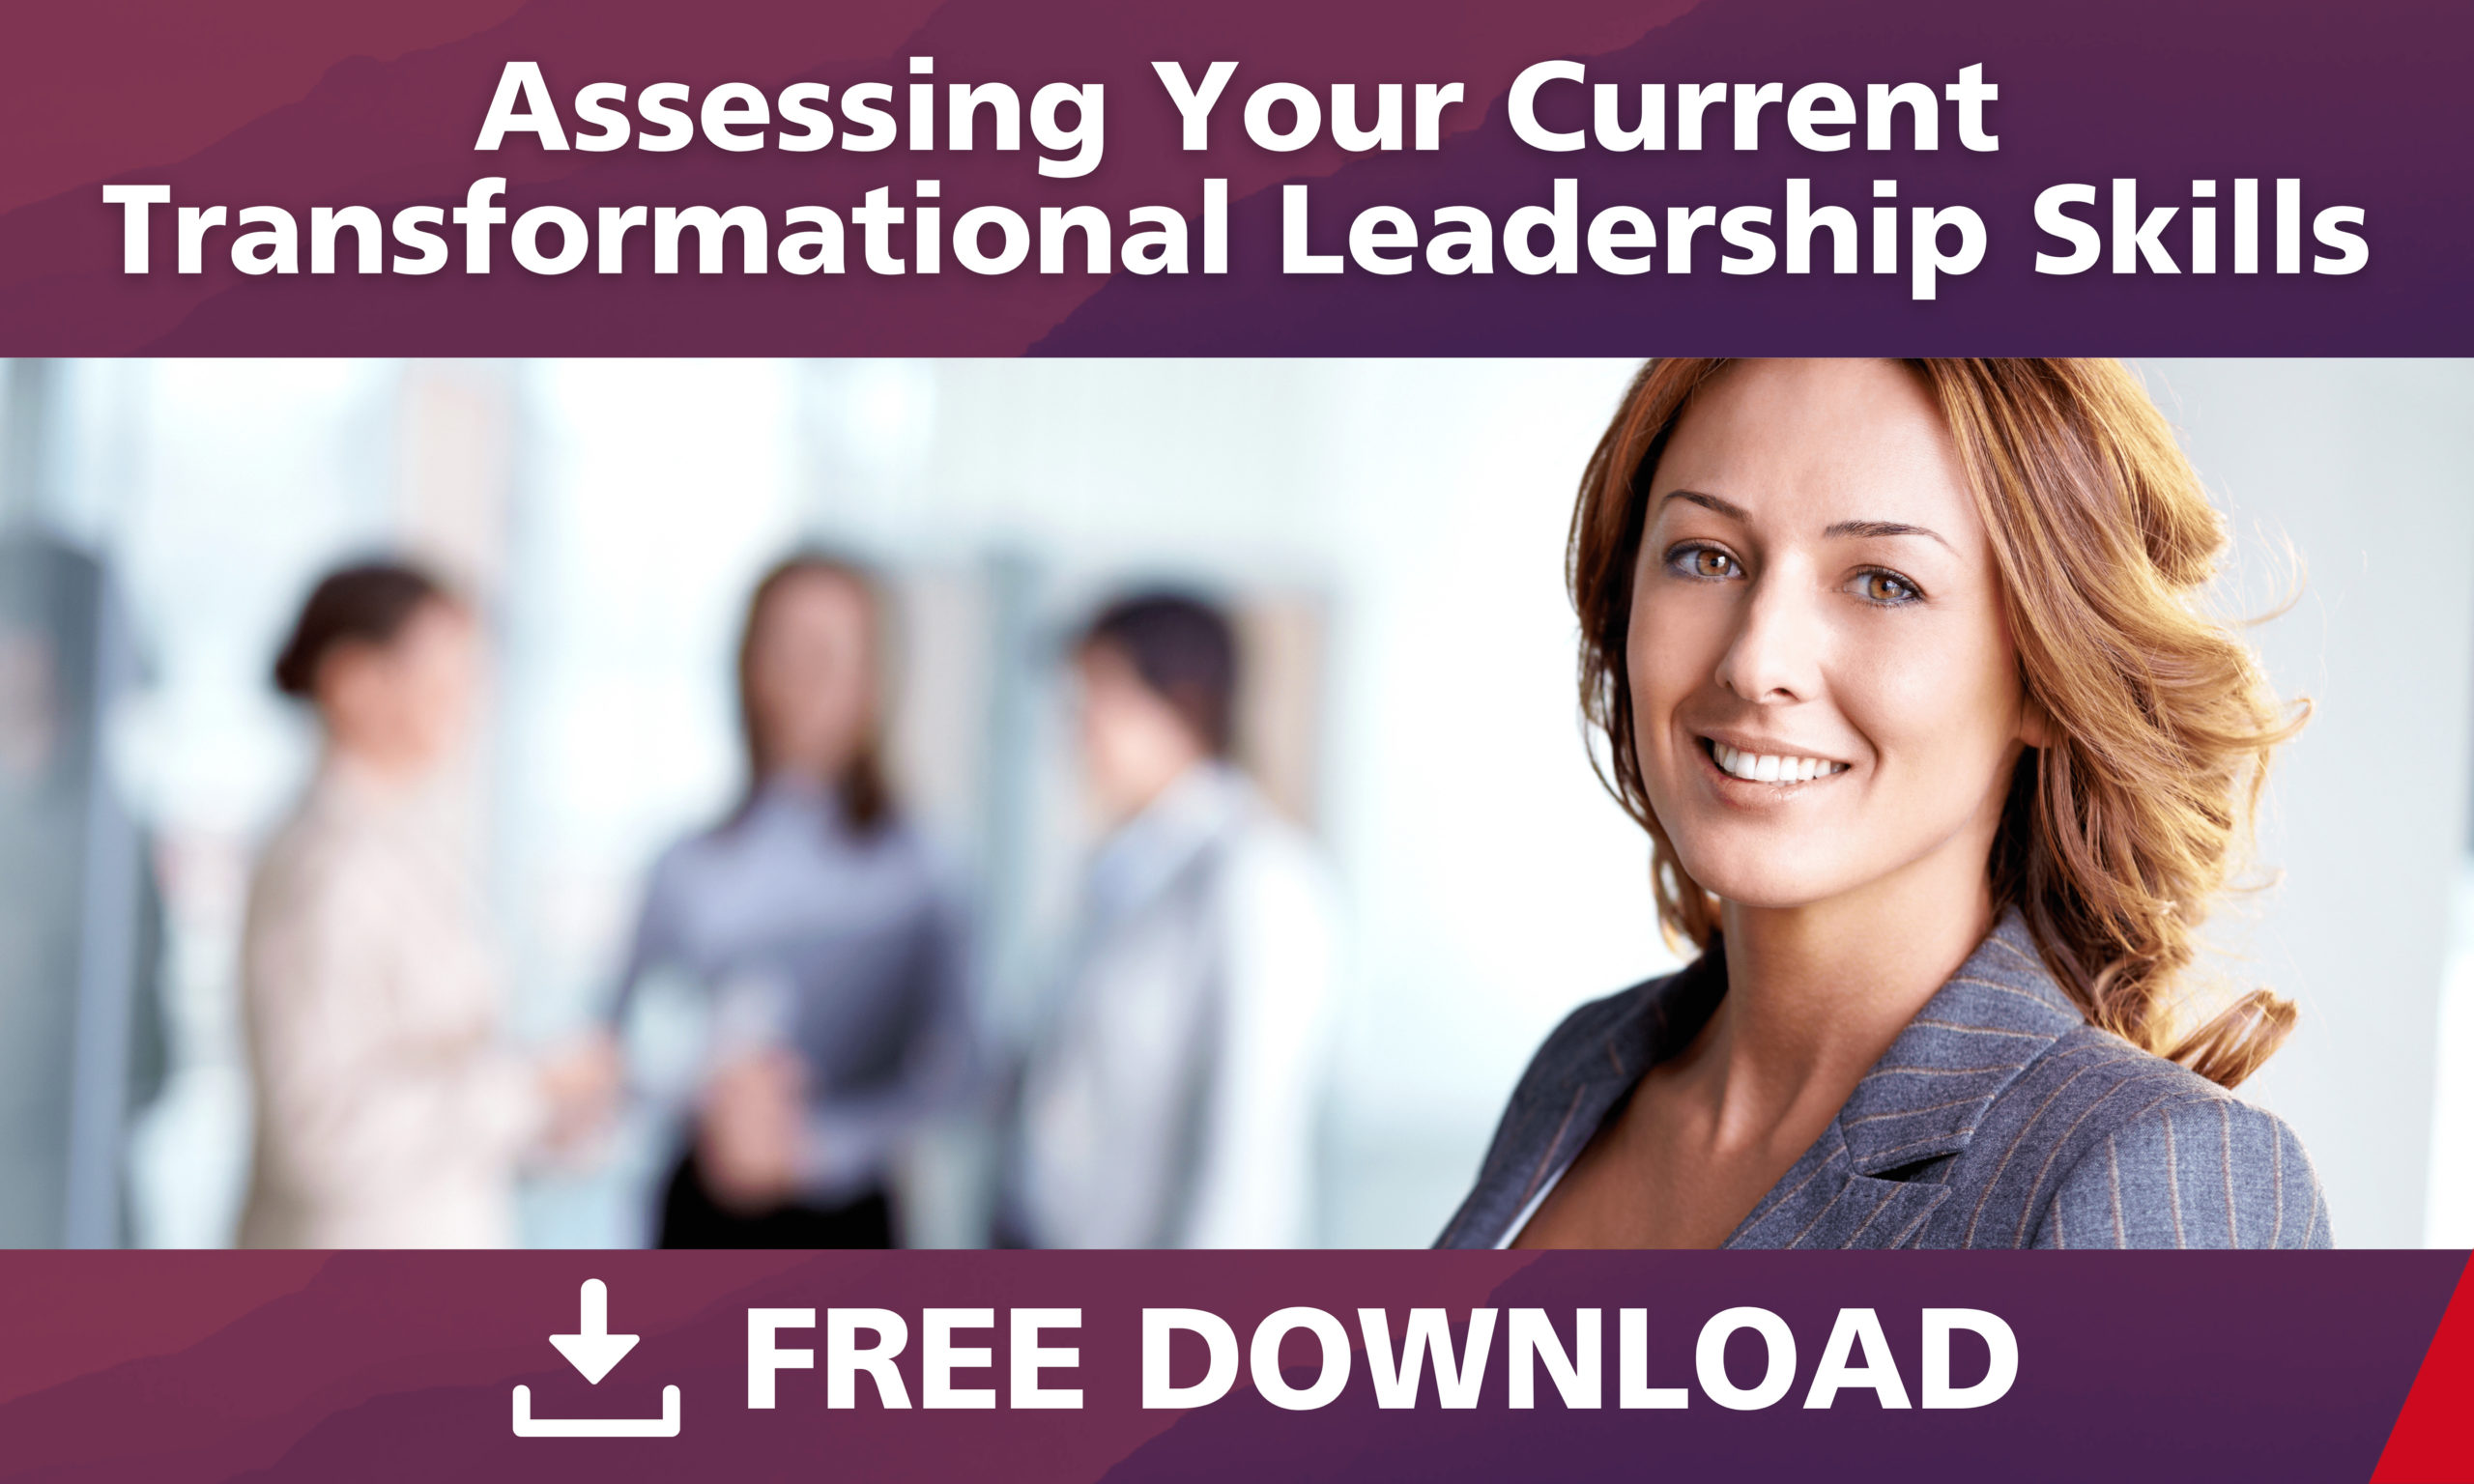 Assessing your Current Transformational Leadership Skills